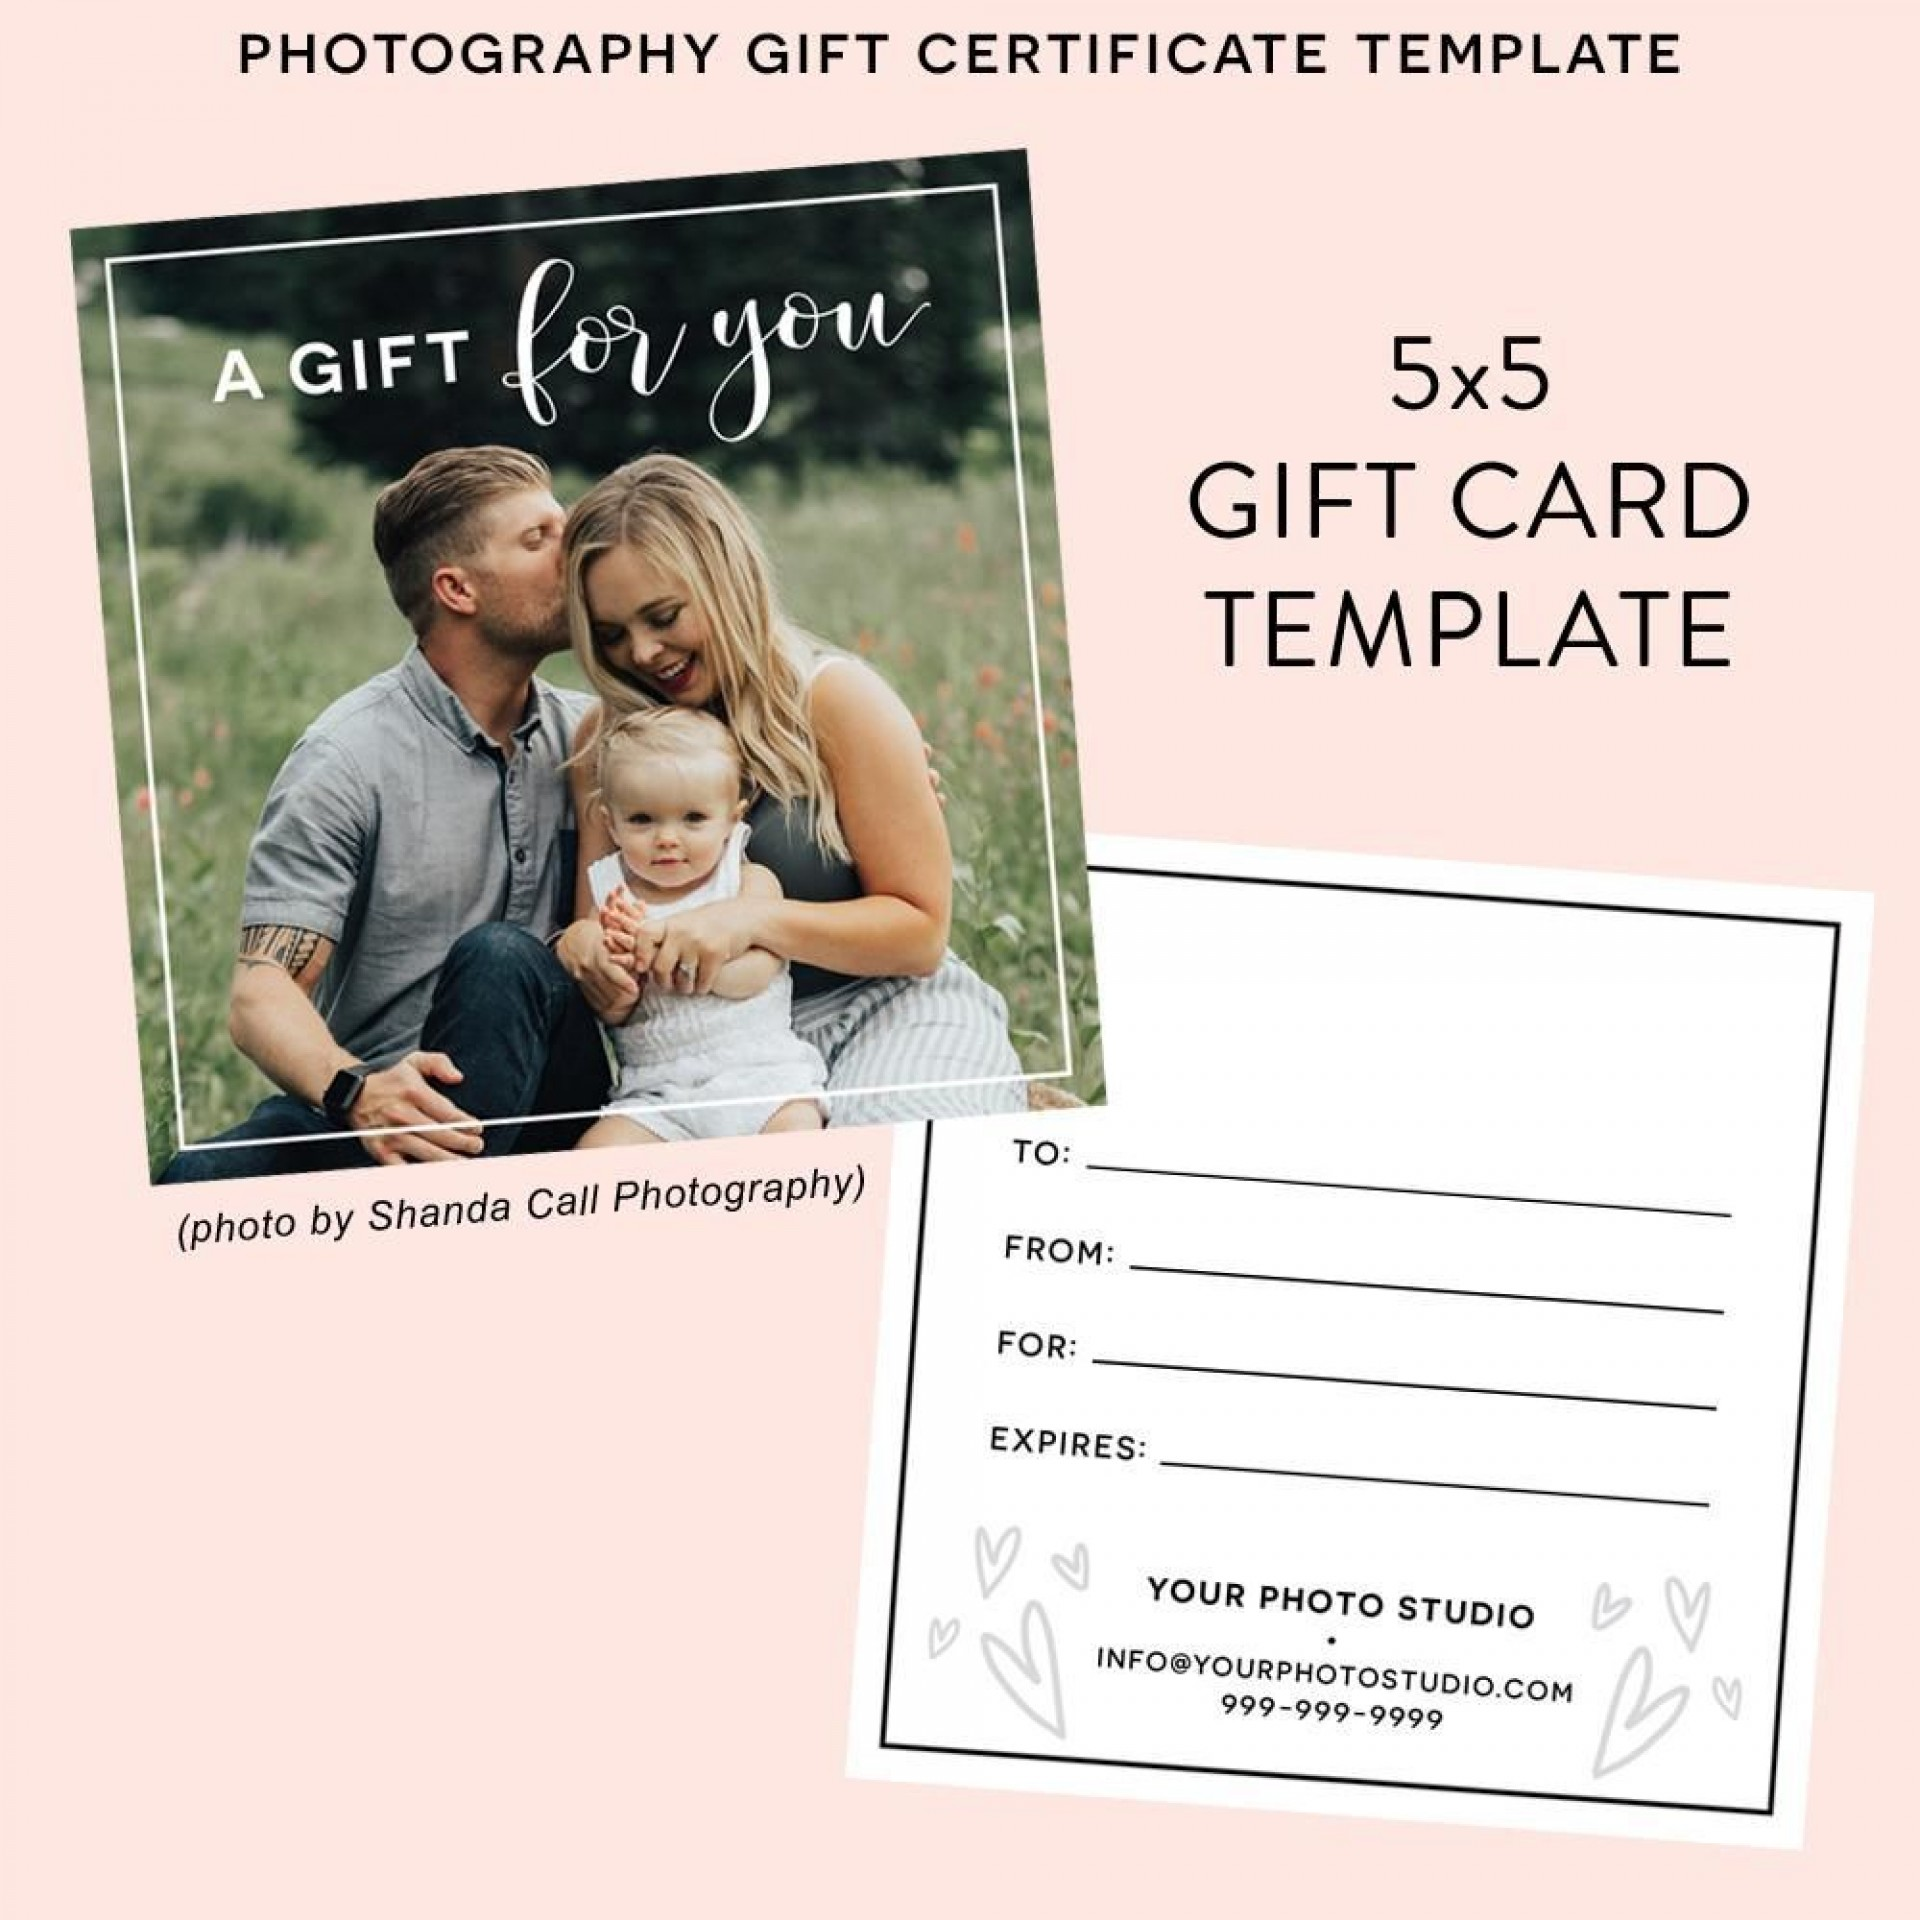 004 Formidable Photography Gift Certificate Template Photoshop Free High Definition 1920